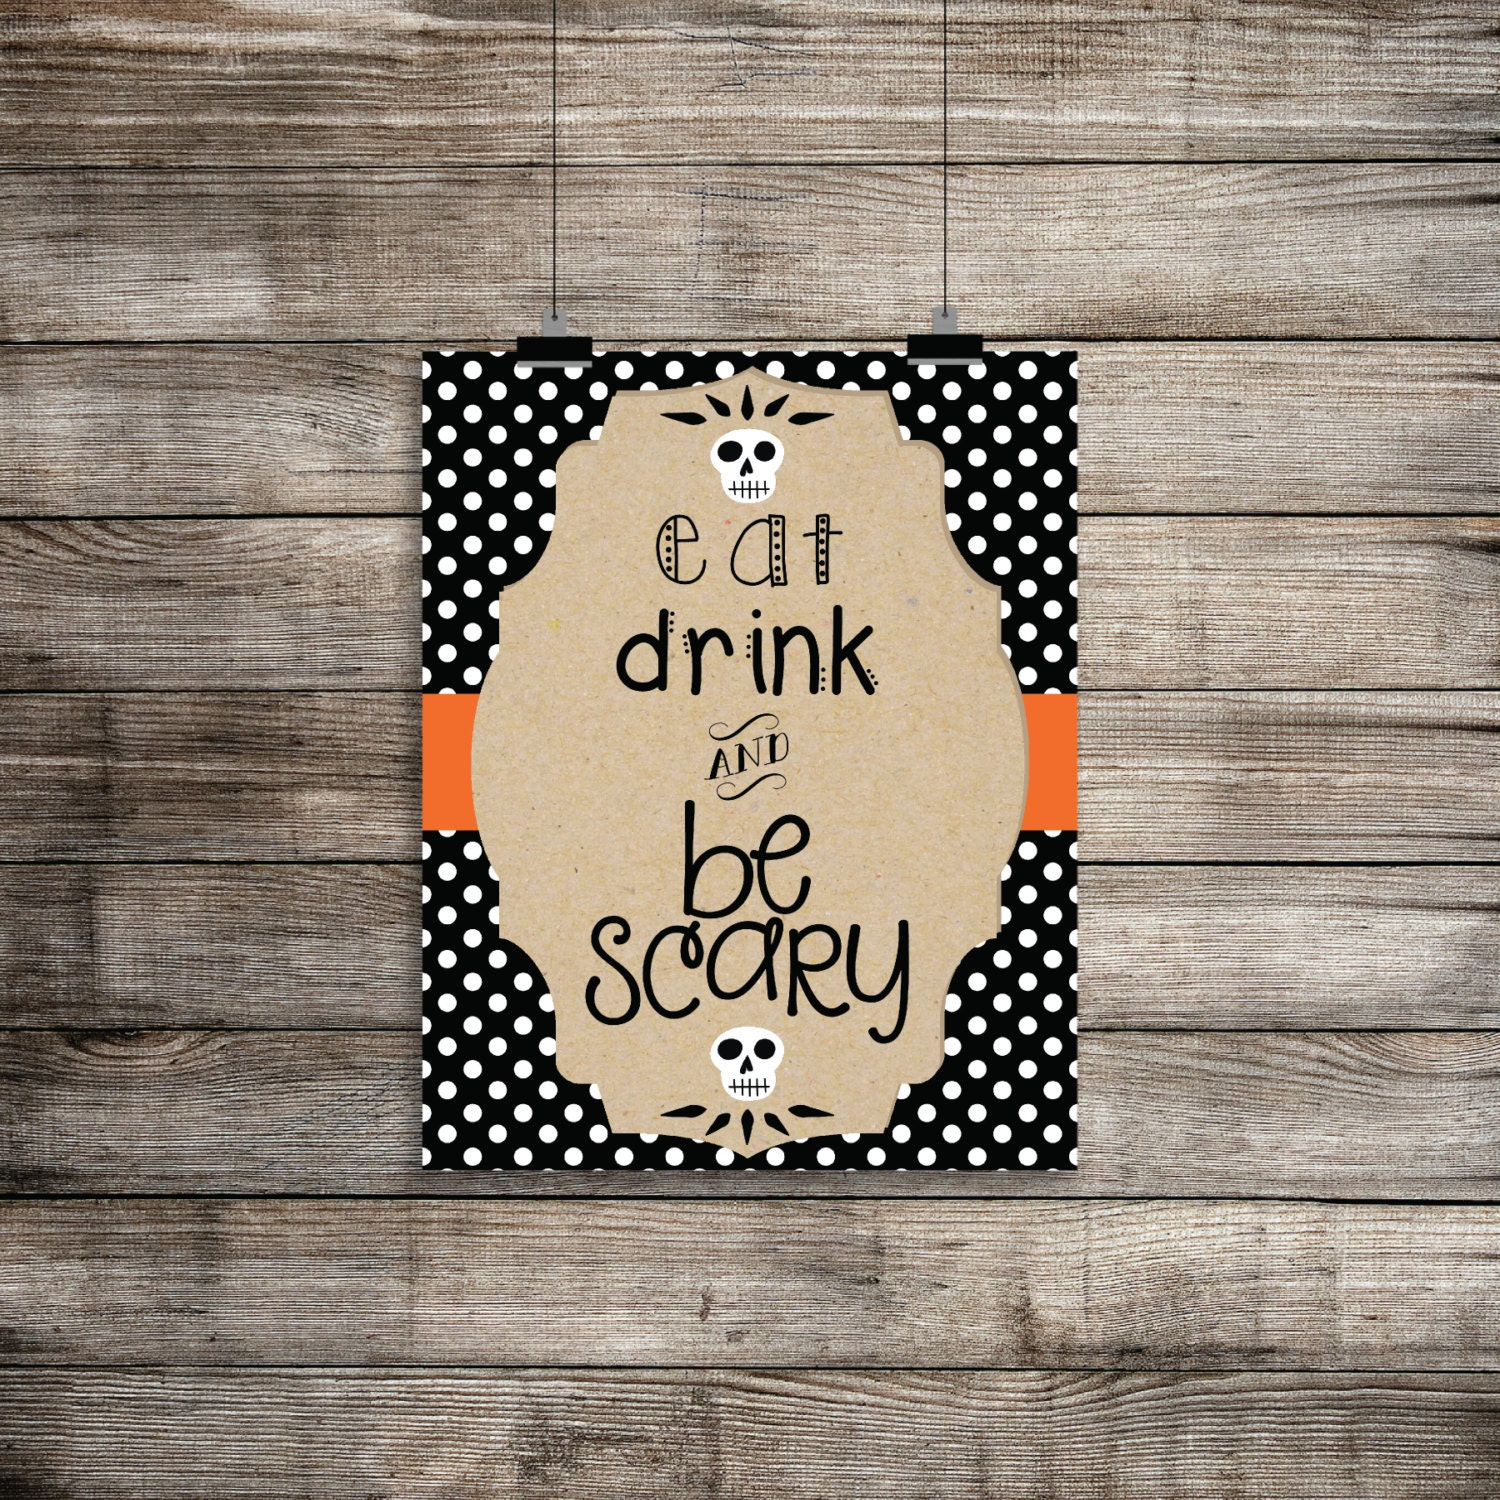 Eat drink wall decor : Eat drink and be scary halloween print wall decor